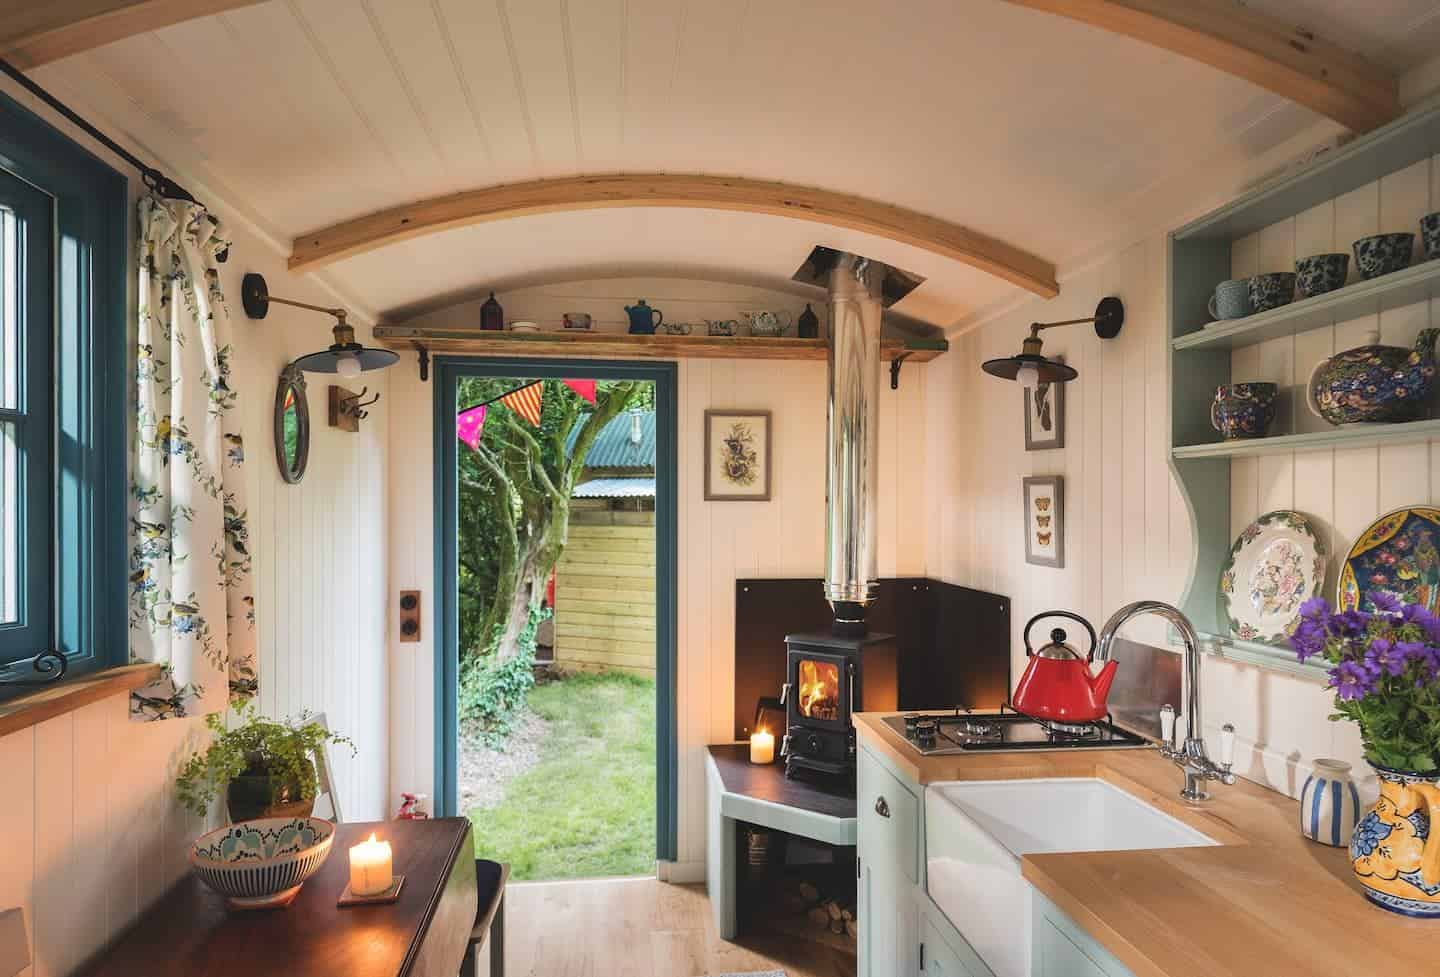 Small Stove in a Shepherd's Hut